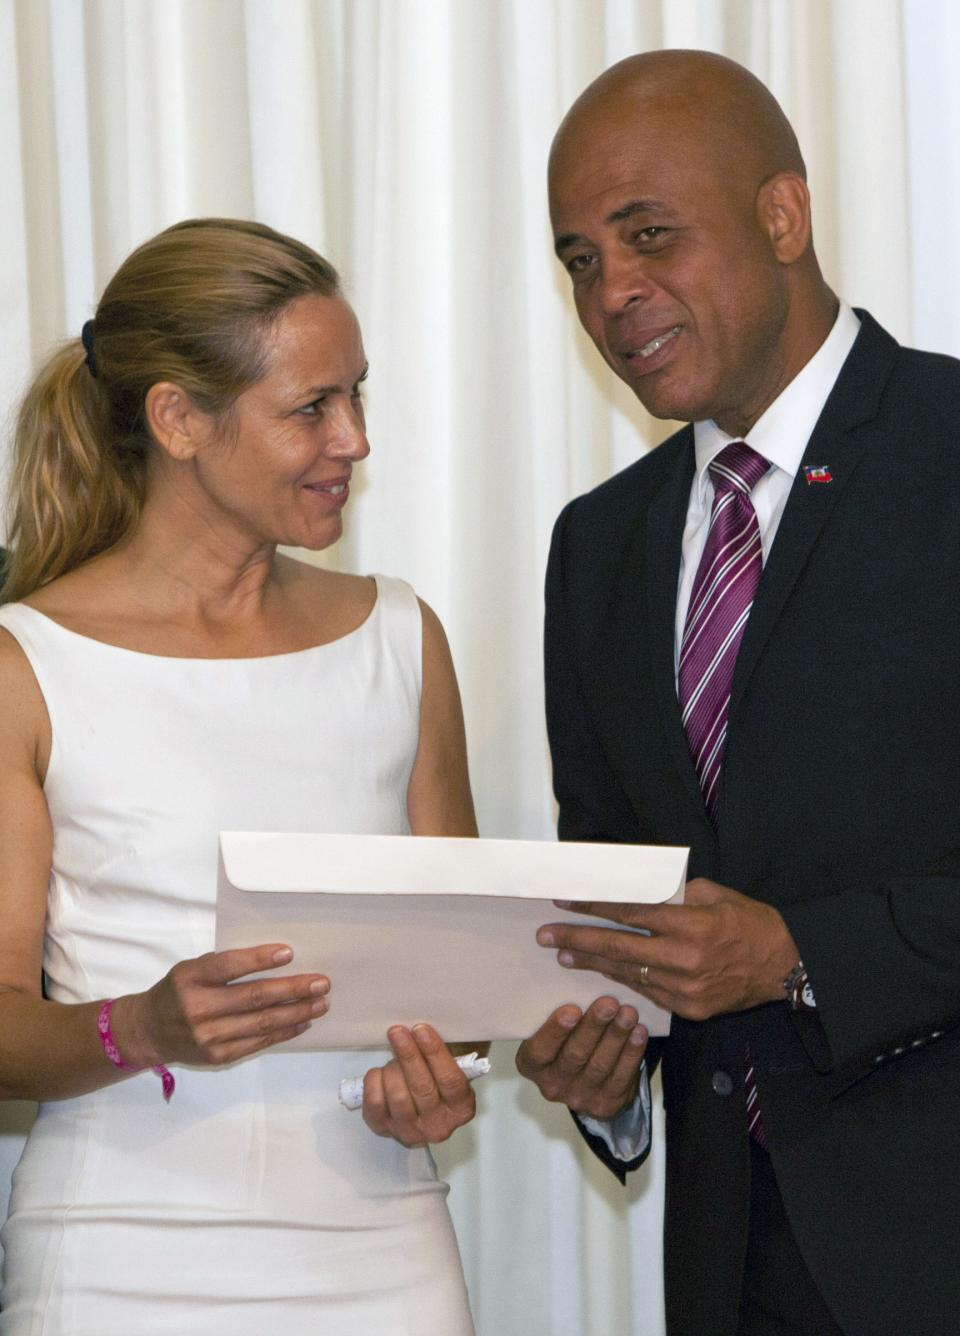 Haiti's President Michel Martelly, right, gives a certificate to actress Maria Bello during a ceremony honoring new goodwill ambassadors at the National Palace in Port-au-Prince, Haiti, Tuesday, Oct. 23,  2012. Bello is the co-founder of women's grassroots group We Advance. (AP Photo/Dieu Nalio Chery)